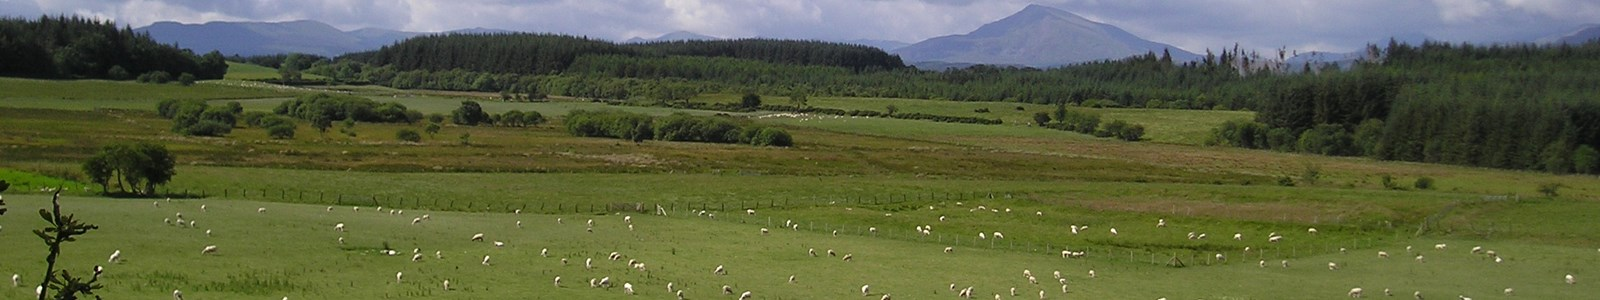 landscape with sheep and farm woodlands